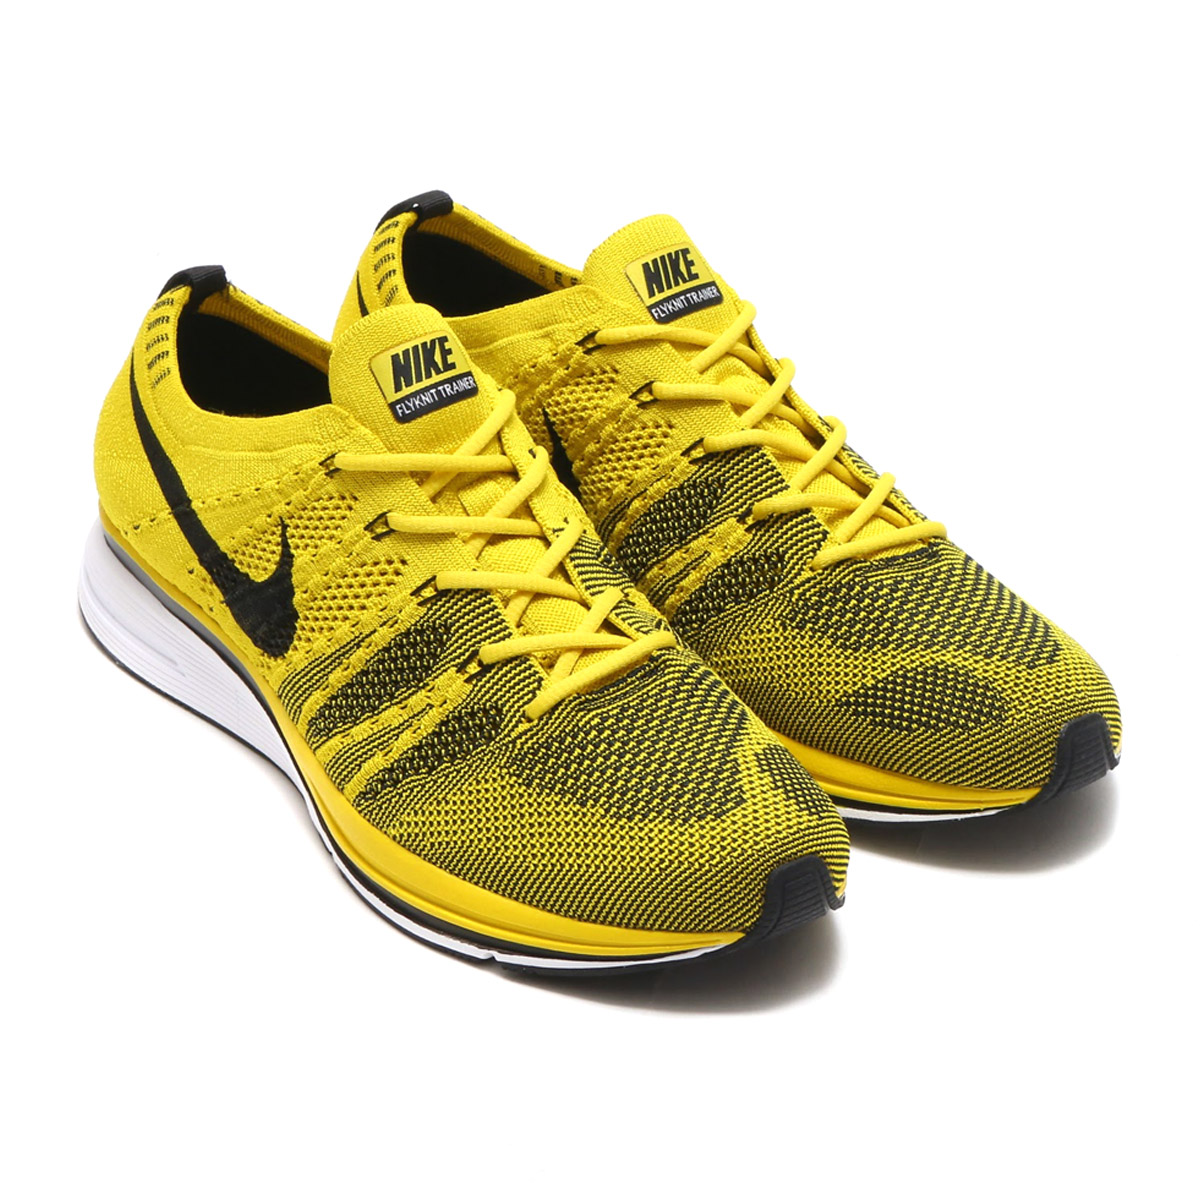 257282a6054f NIKE FLYKNIT TRAINER (Nike fried food knit trainer) (BRIGHT CITRON BLACK- WHITE) 17HO-S